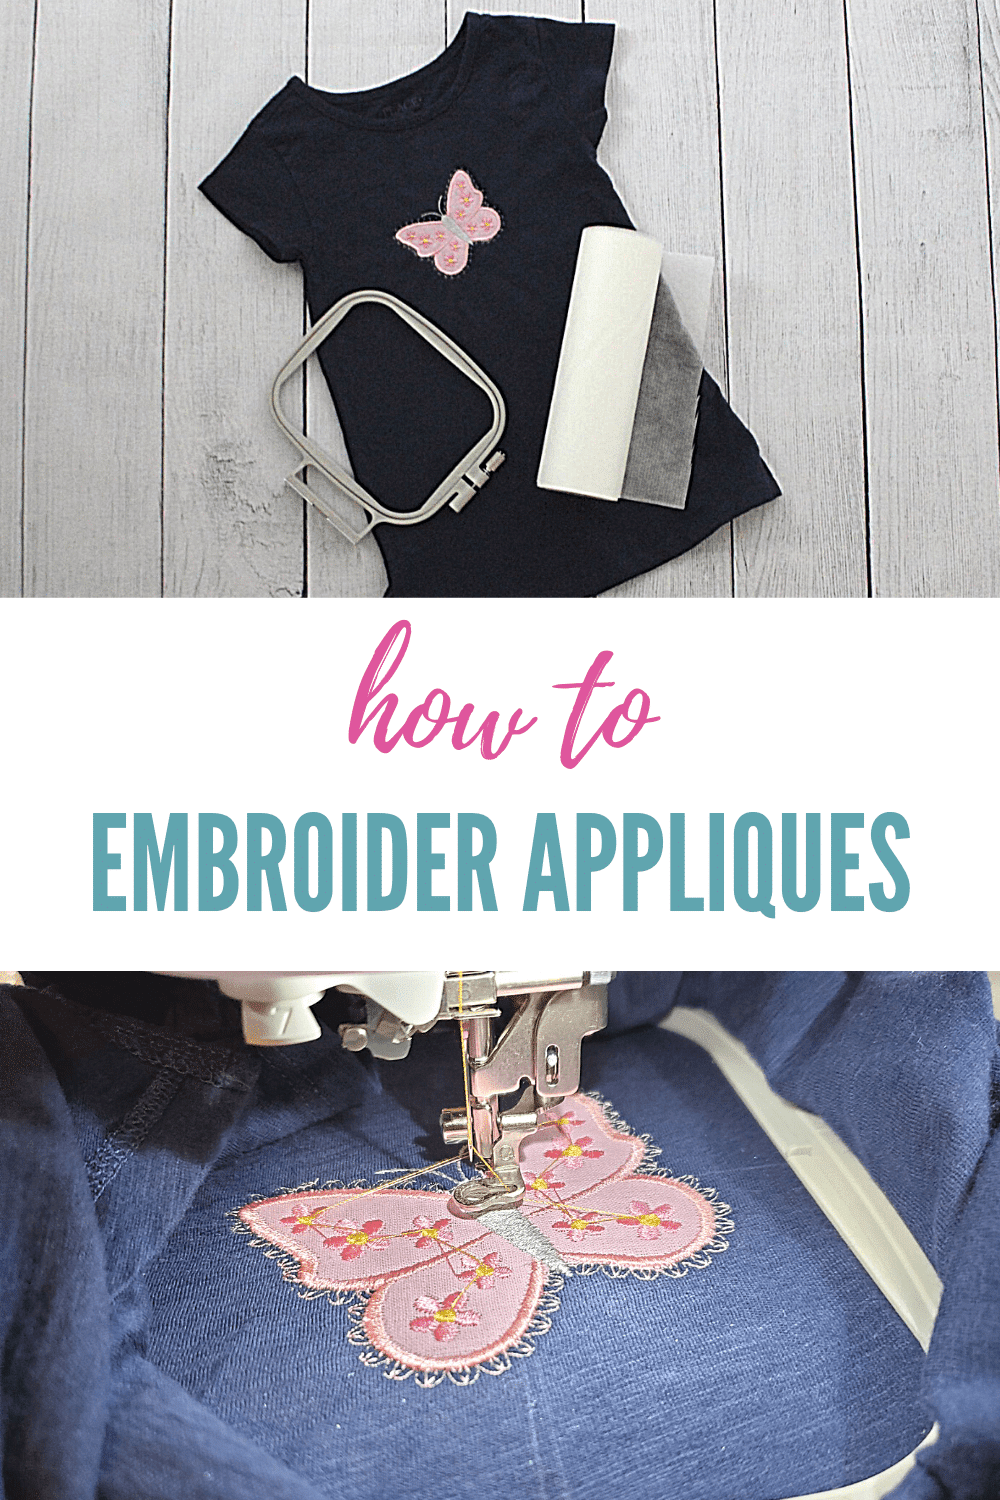 machine applique for embroidery beginners